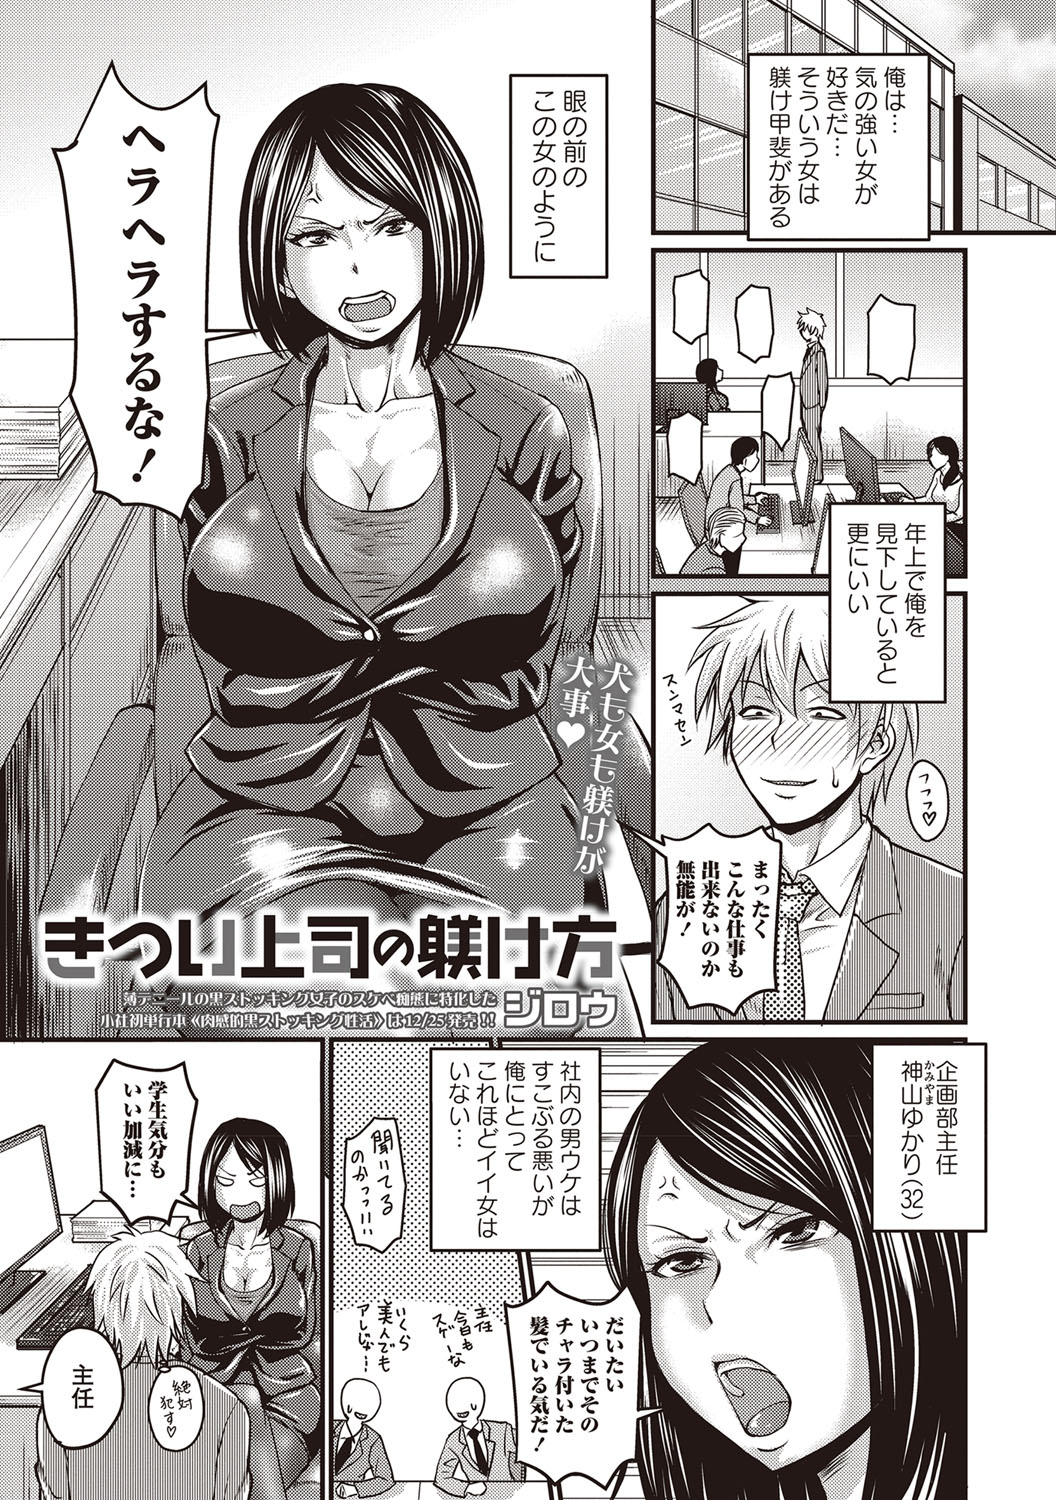 【エロ漫画】気の強い爆乳OL上司を騙して処女を奪う。恋愛相談の為と、無知な熟女マンコを犯し、ひょっとこフェラまで。おチンポ好きの淫乱女に躾けて、都合のいい肉便器にしてやる